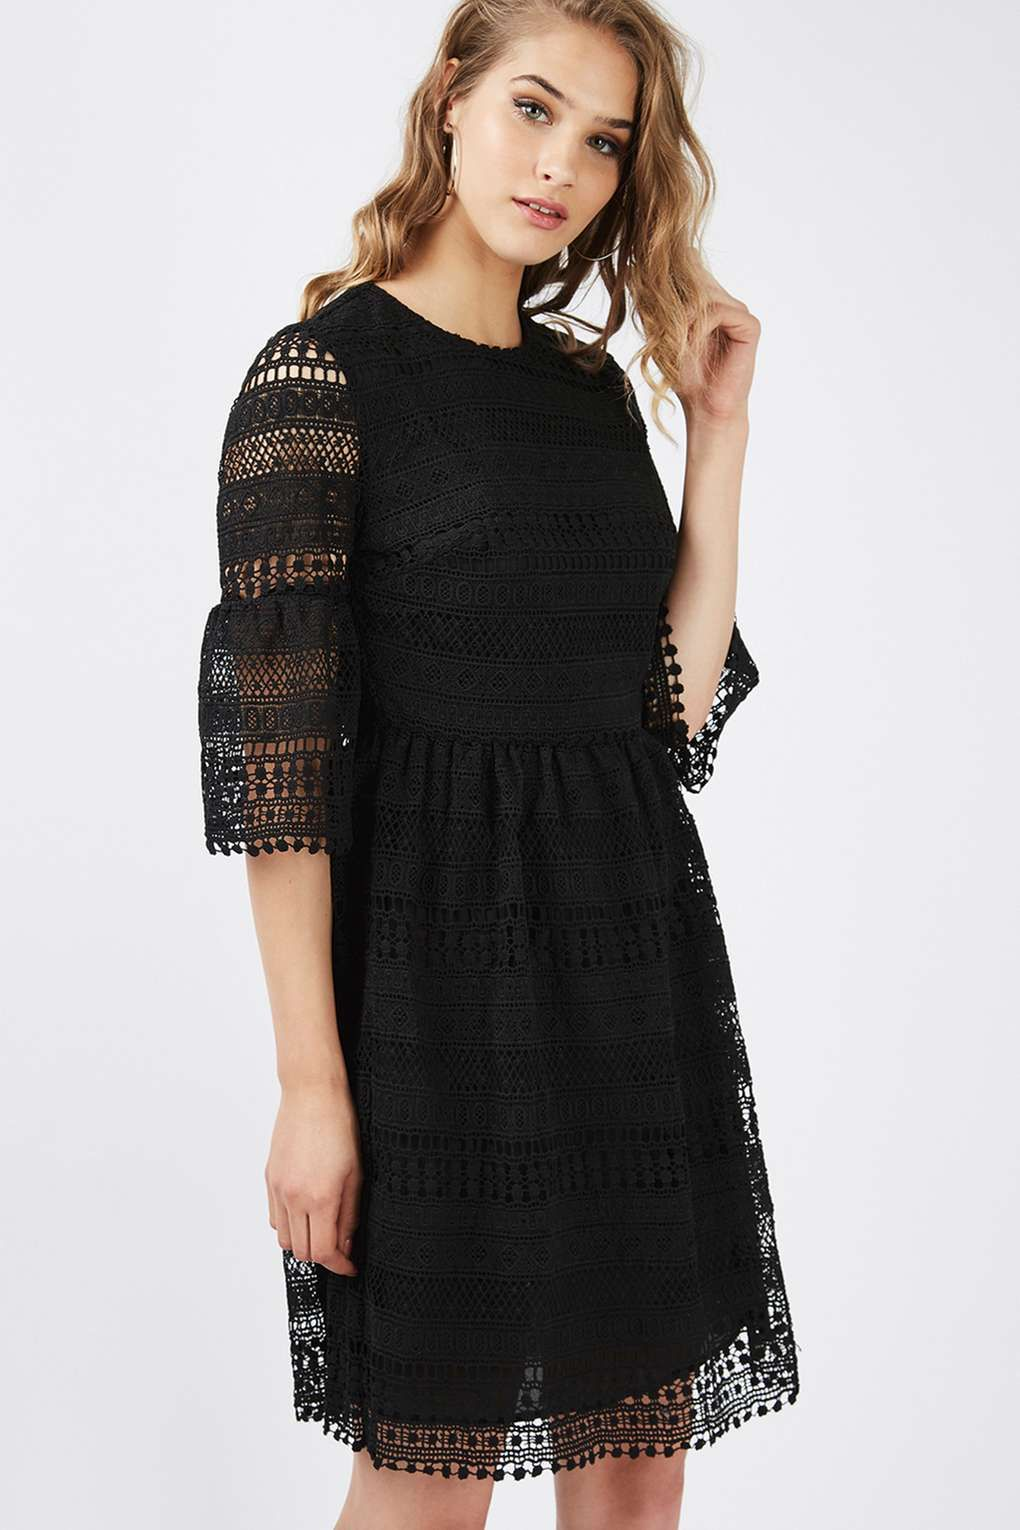 **Crochet Detail Skater Dress by Glamorous